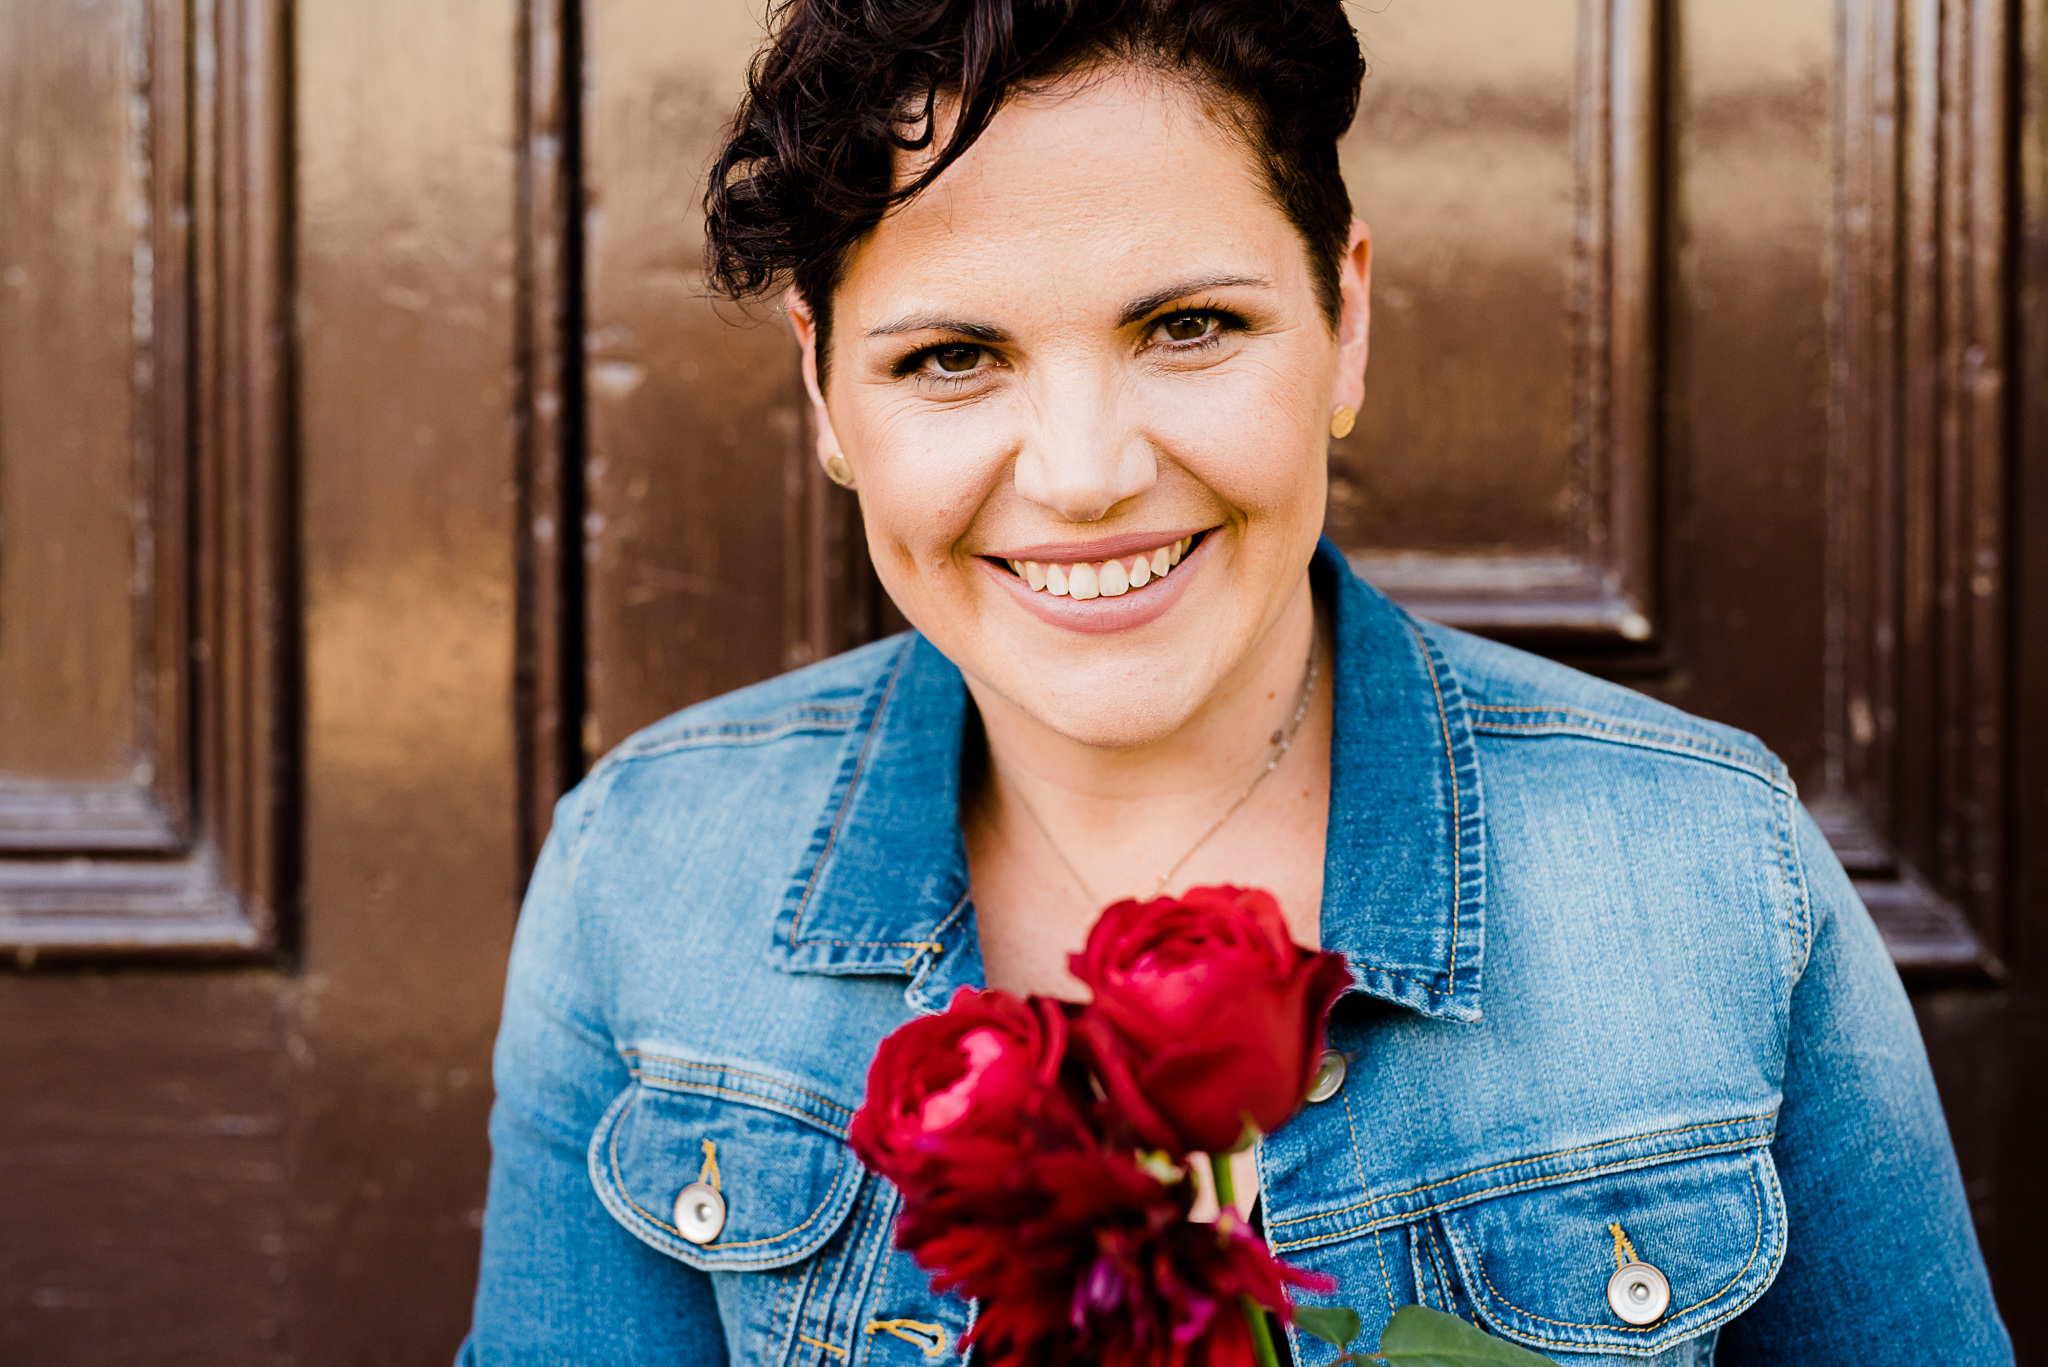 3 Portraits and Petals - Be In Bloom - Georgie James Photography-12.jpg